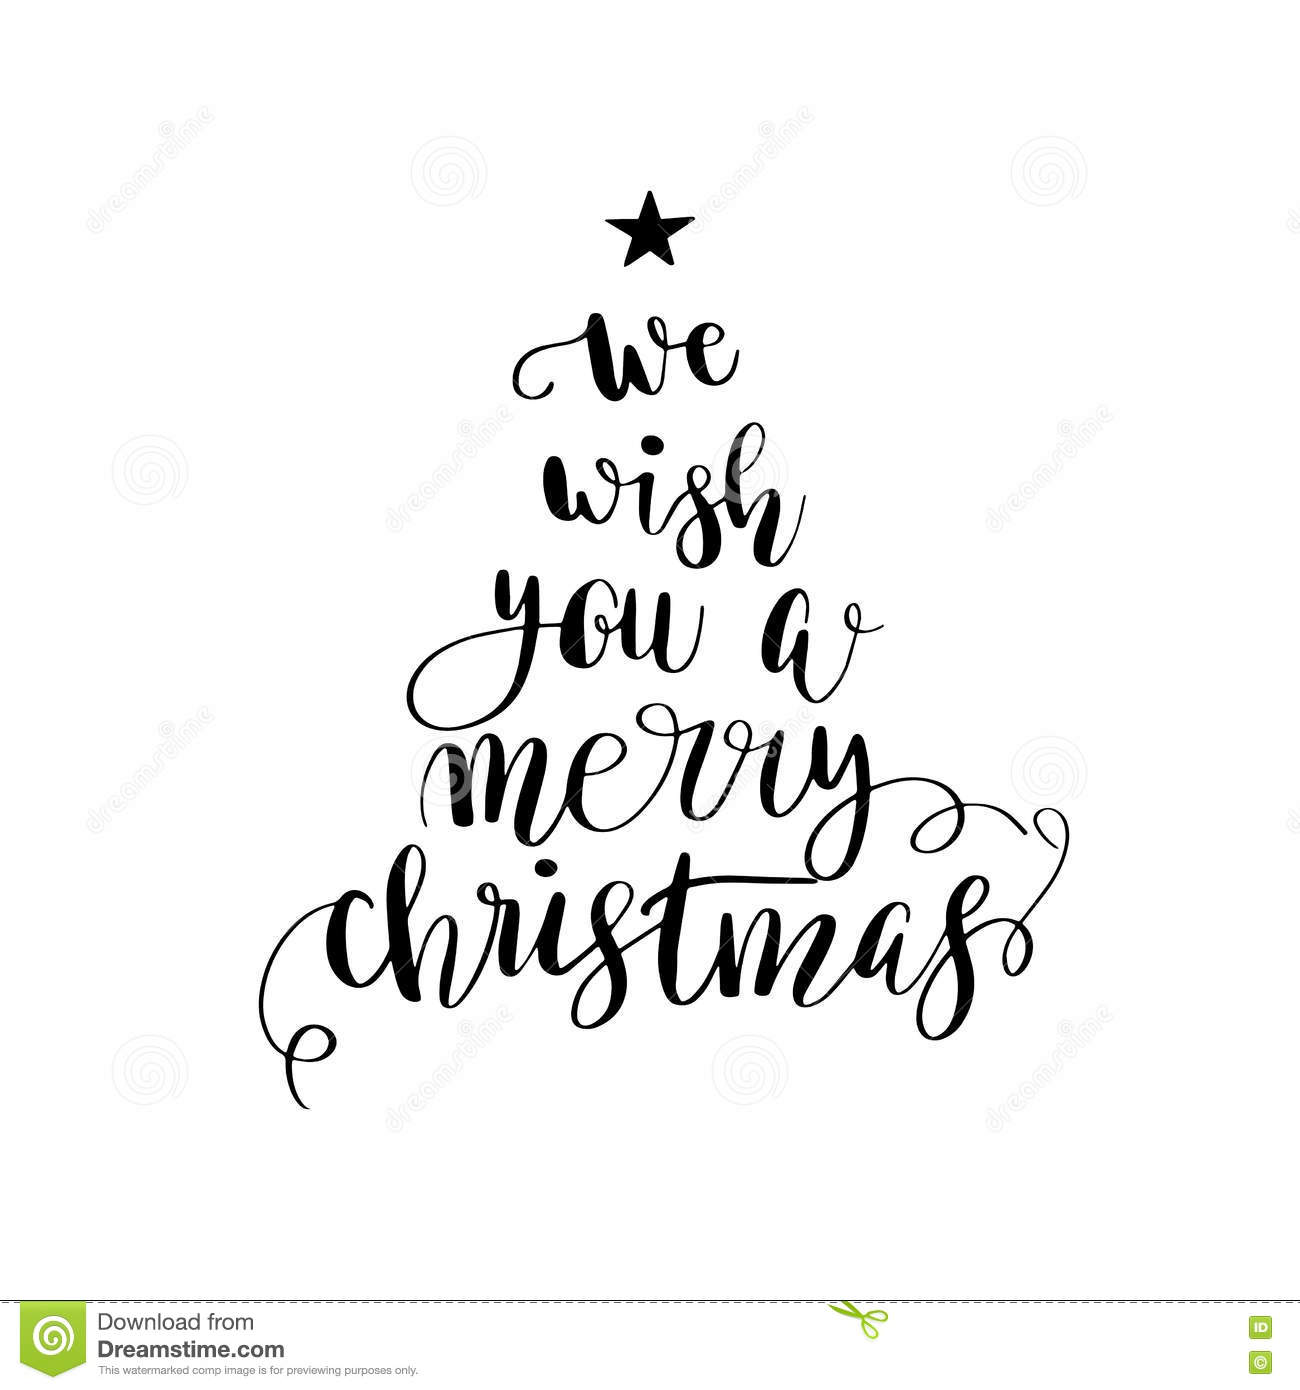 Christmas Calligraphy.Calligraphy Lettering Christmas Tree Stock Illustration